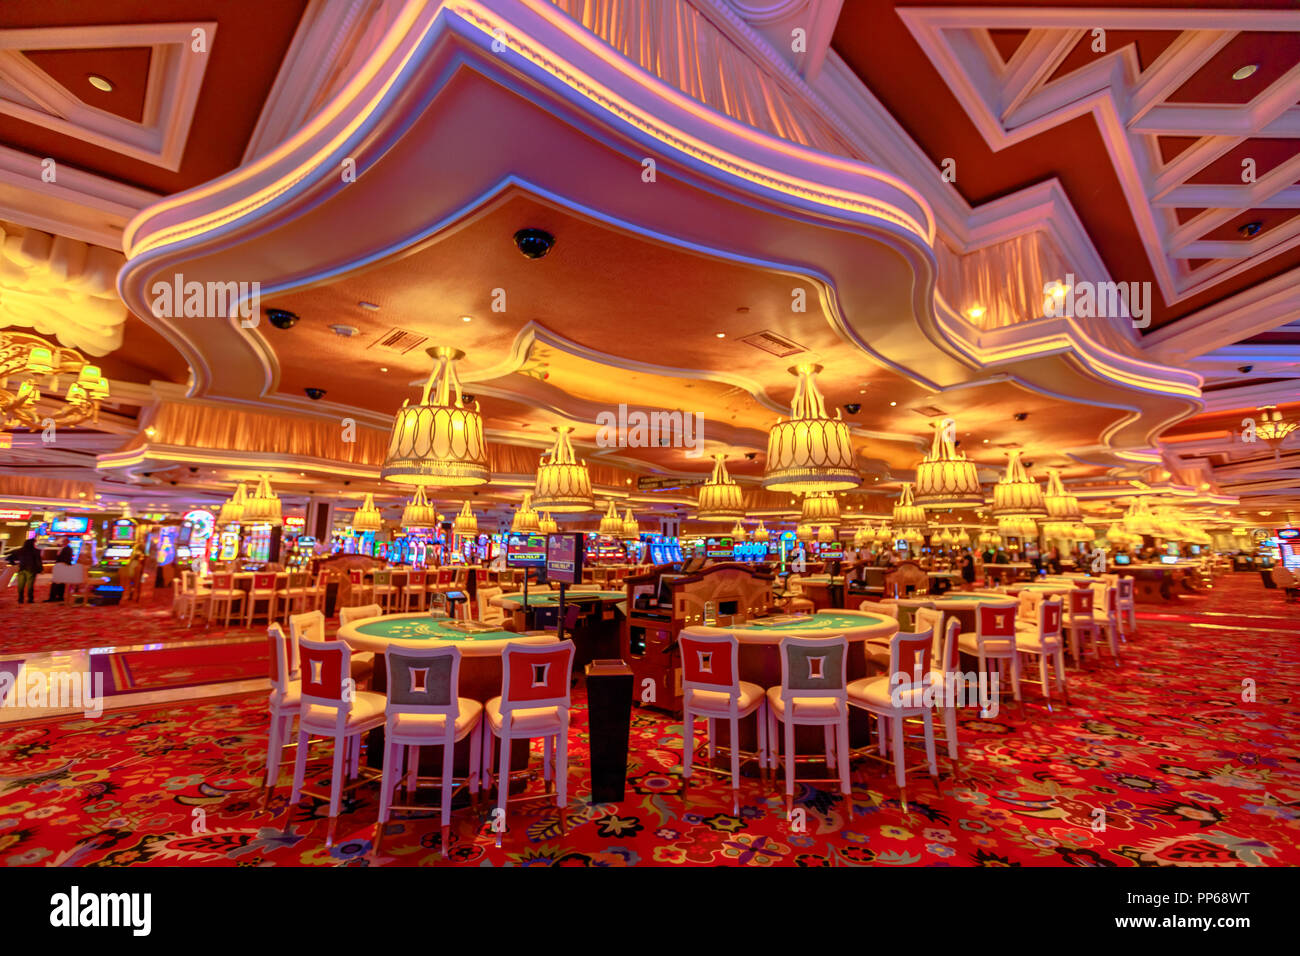 Las Vegas, Nevada, United States - August 18, 2018: rows of blackjack tables and slot machine inside the luxurious Wynn Las Vegas Resort Hotel, a 5-star, themed Paradise Las Vegas Strip, Nevada. - Stock Image